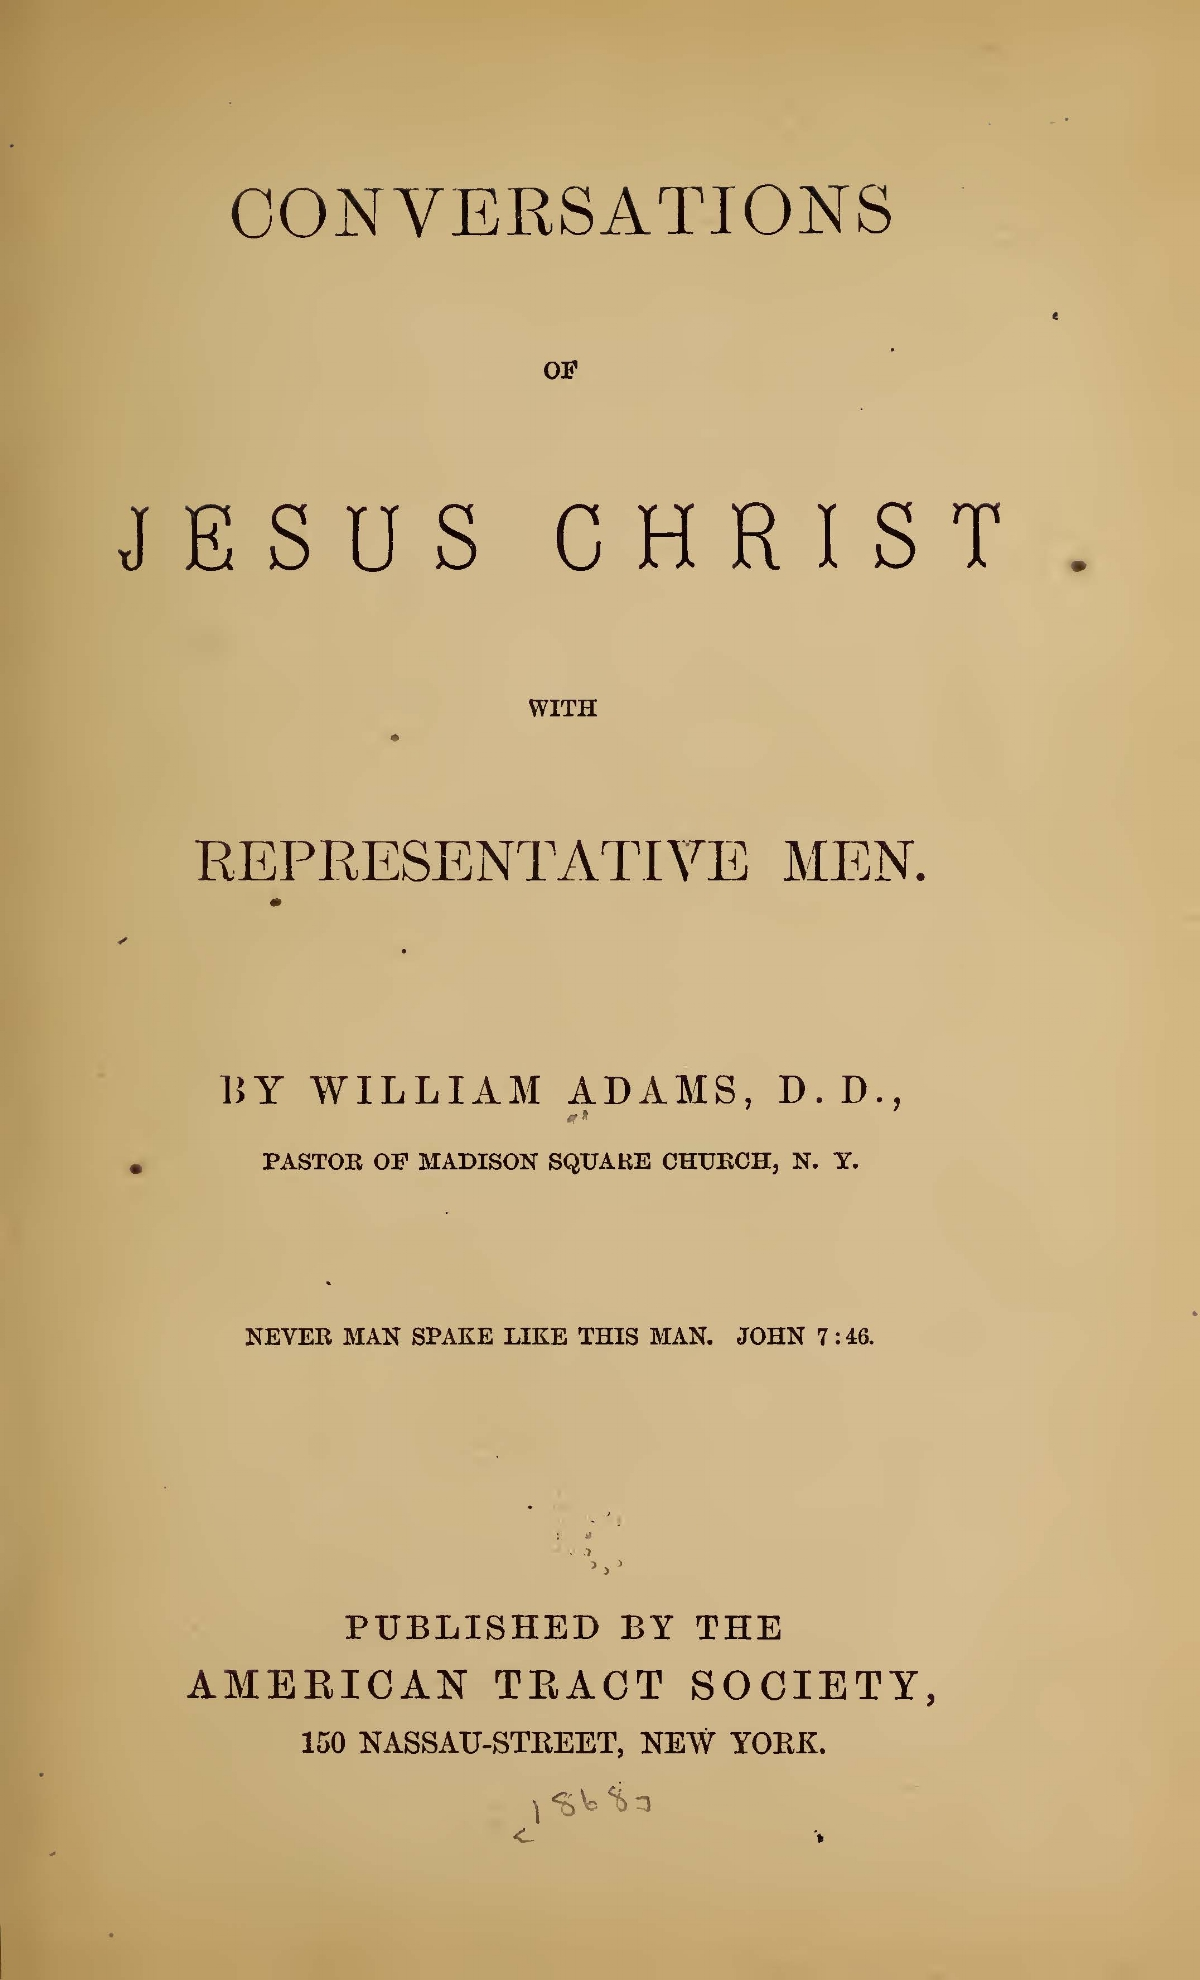 Adams, William, Conversations of Jesus Christ With Representative Men Title Page.jpg